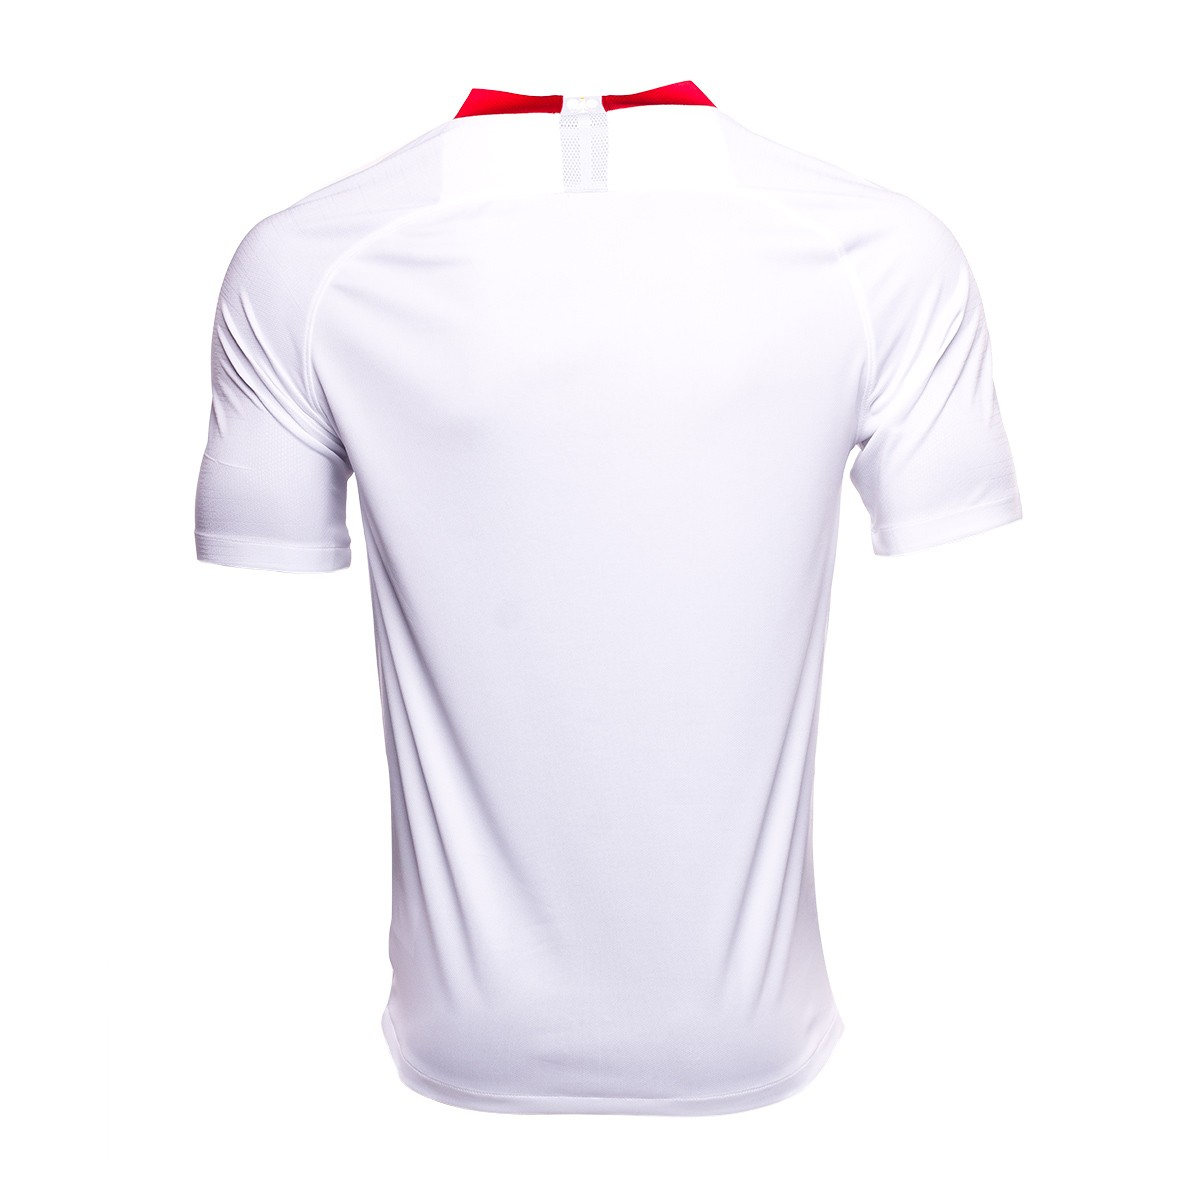 d8d6714525 Camisola Nike Polonia Breathe Stadium Equipamento Principal 2018-2019  White-Sport red - Leaked soccer